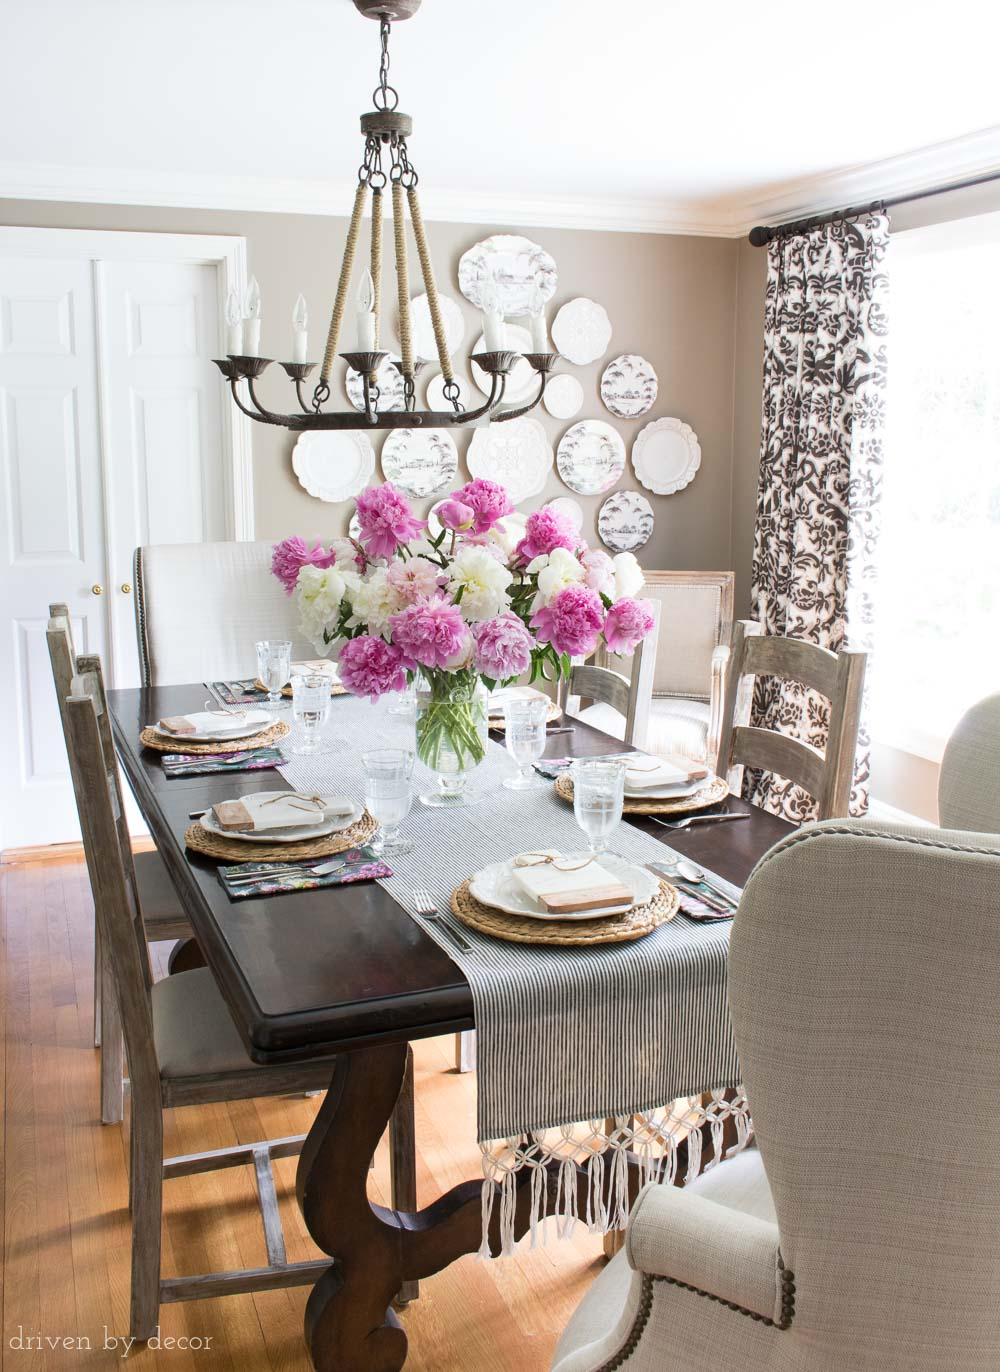 Dining room chandeliers my ten favorites driven by decor